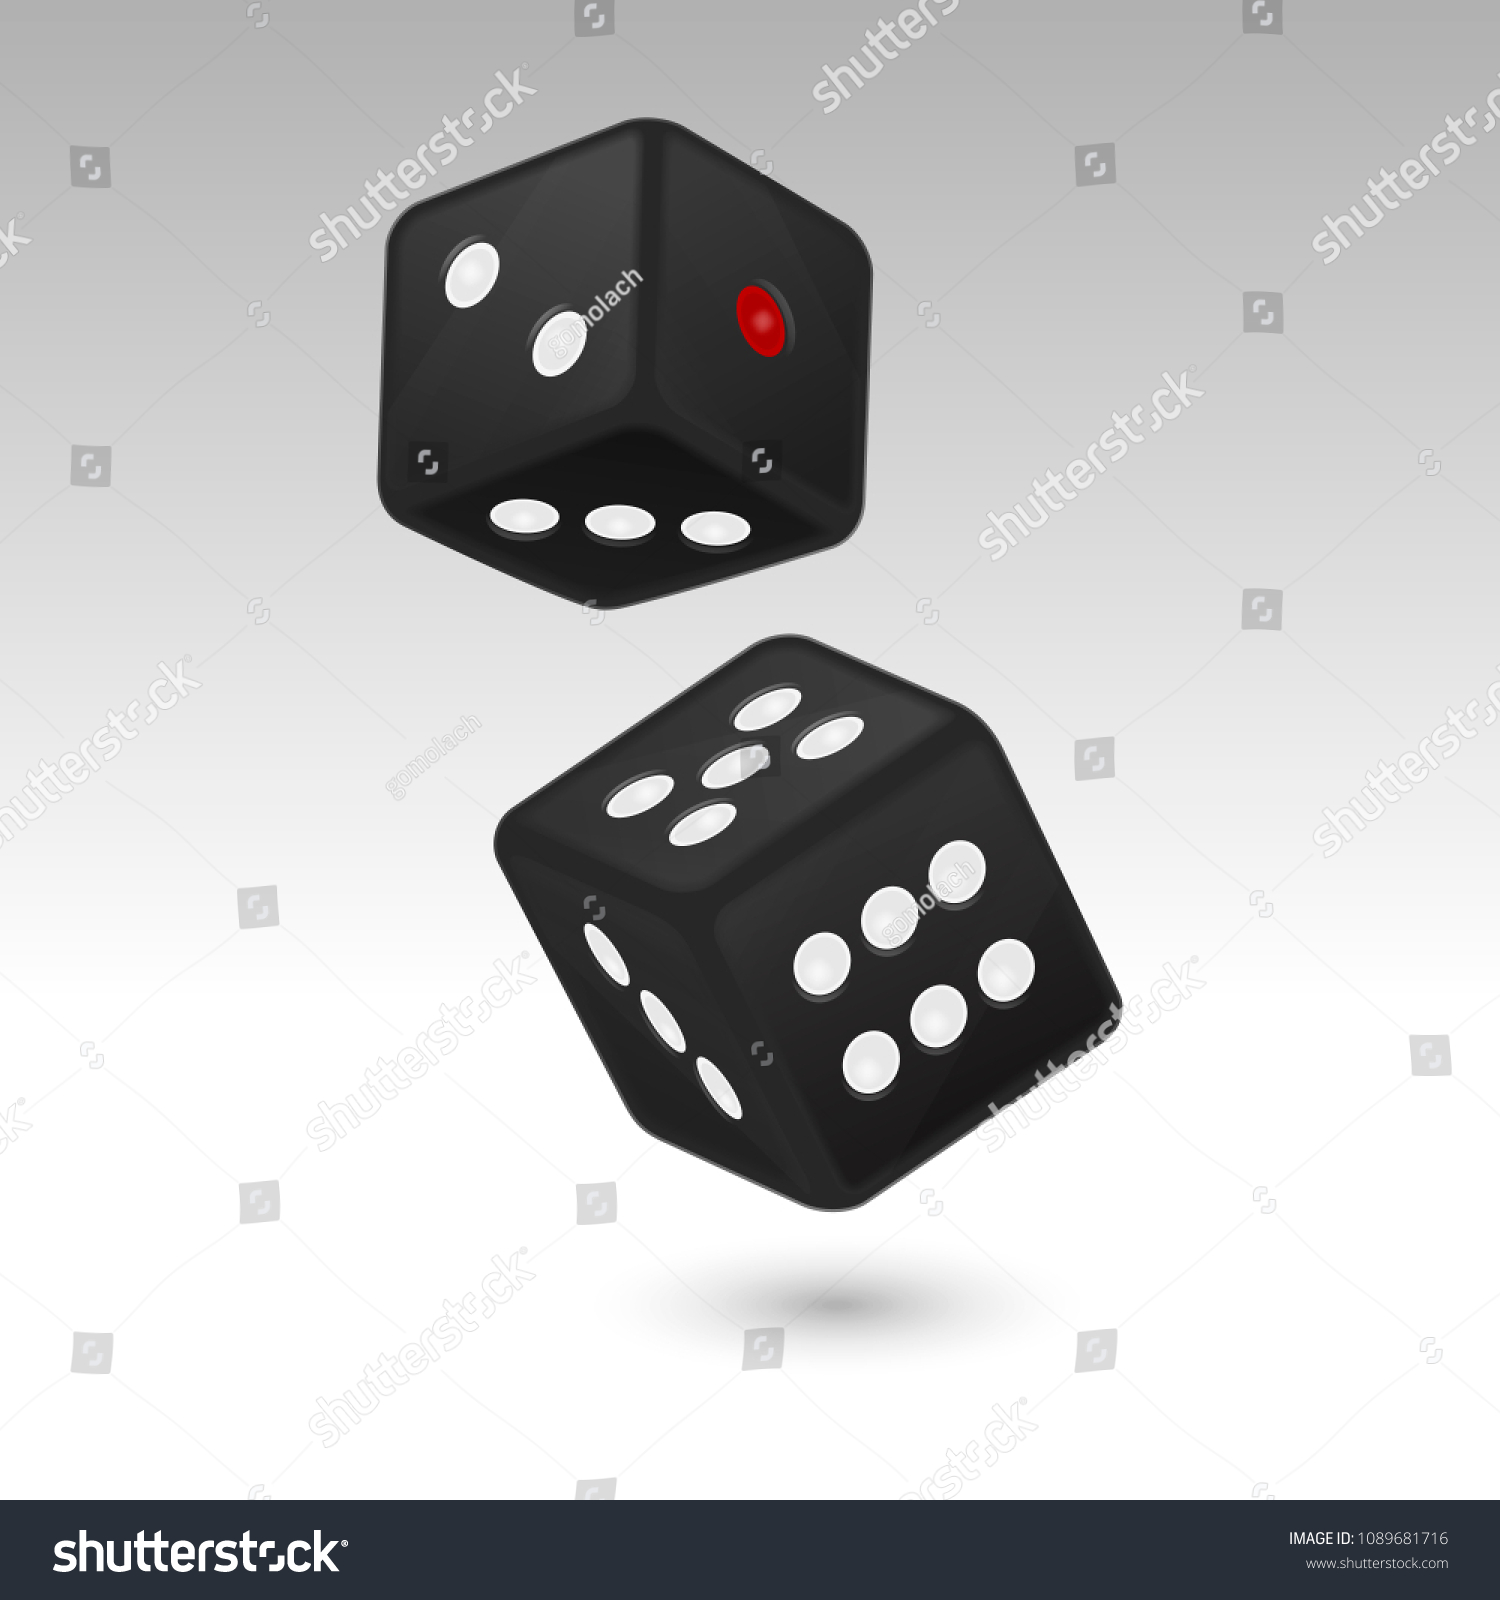 Vector Illustration Of Black Realistic Game Dice Icon In Flight